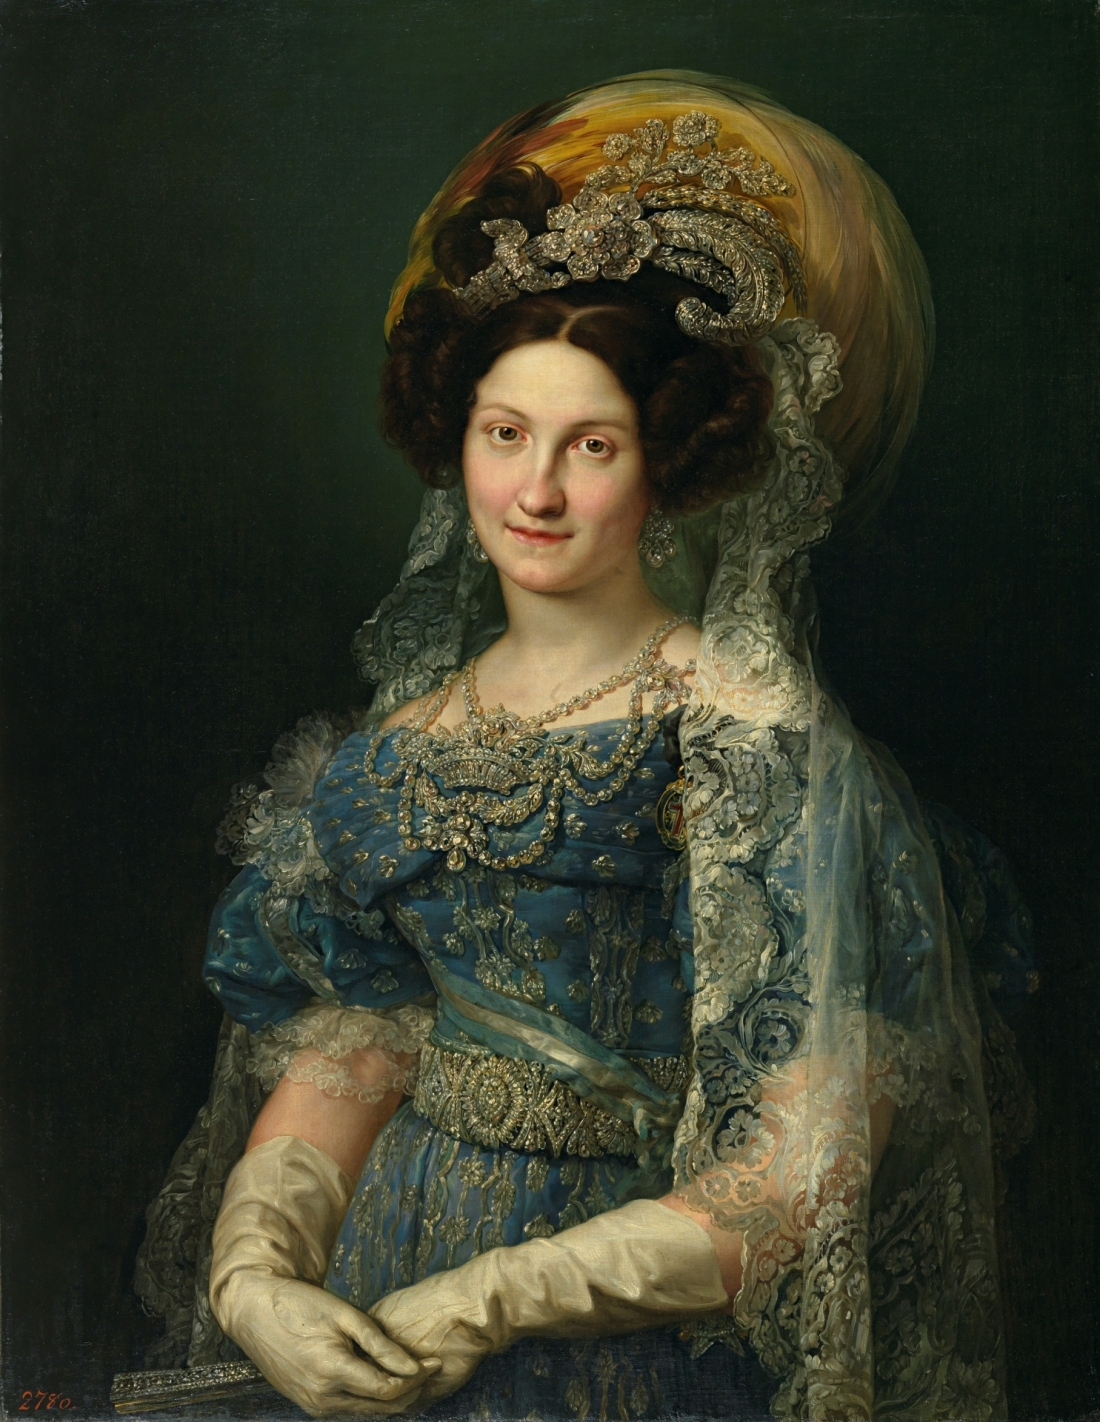 Maria Cristina de Bourbon-Sicily, Queen of Spain. 1830.